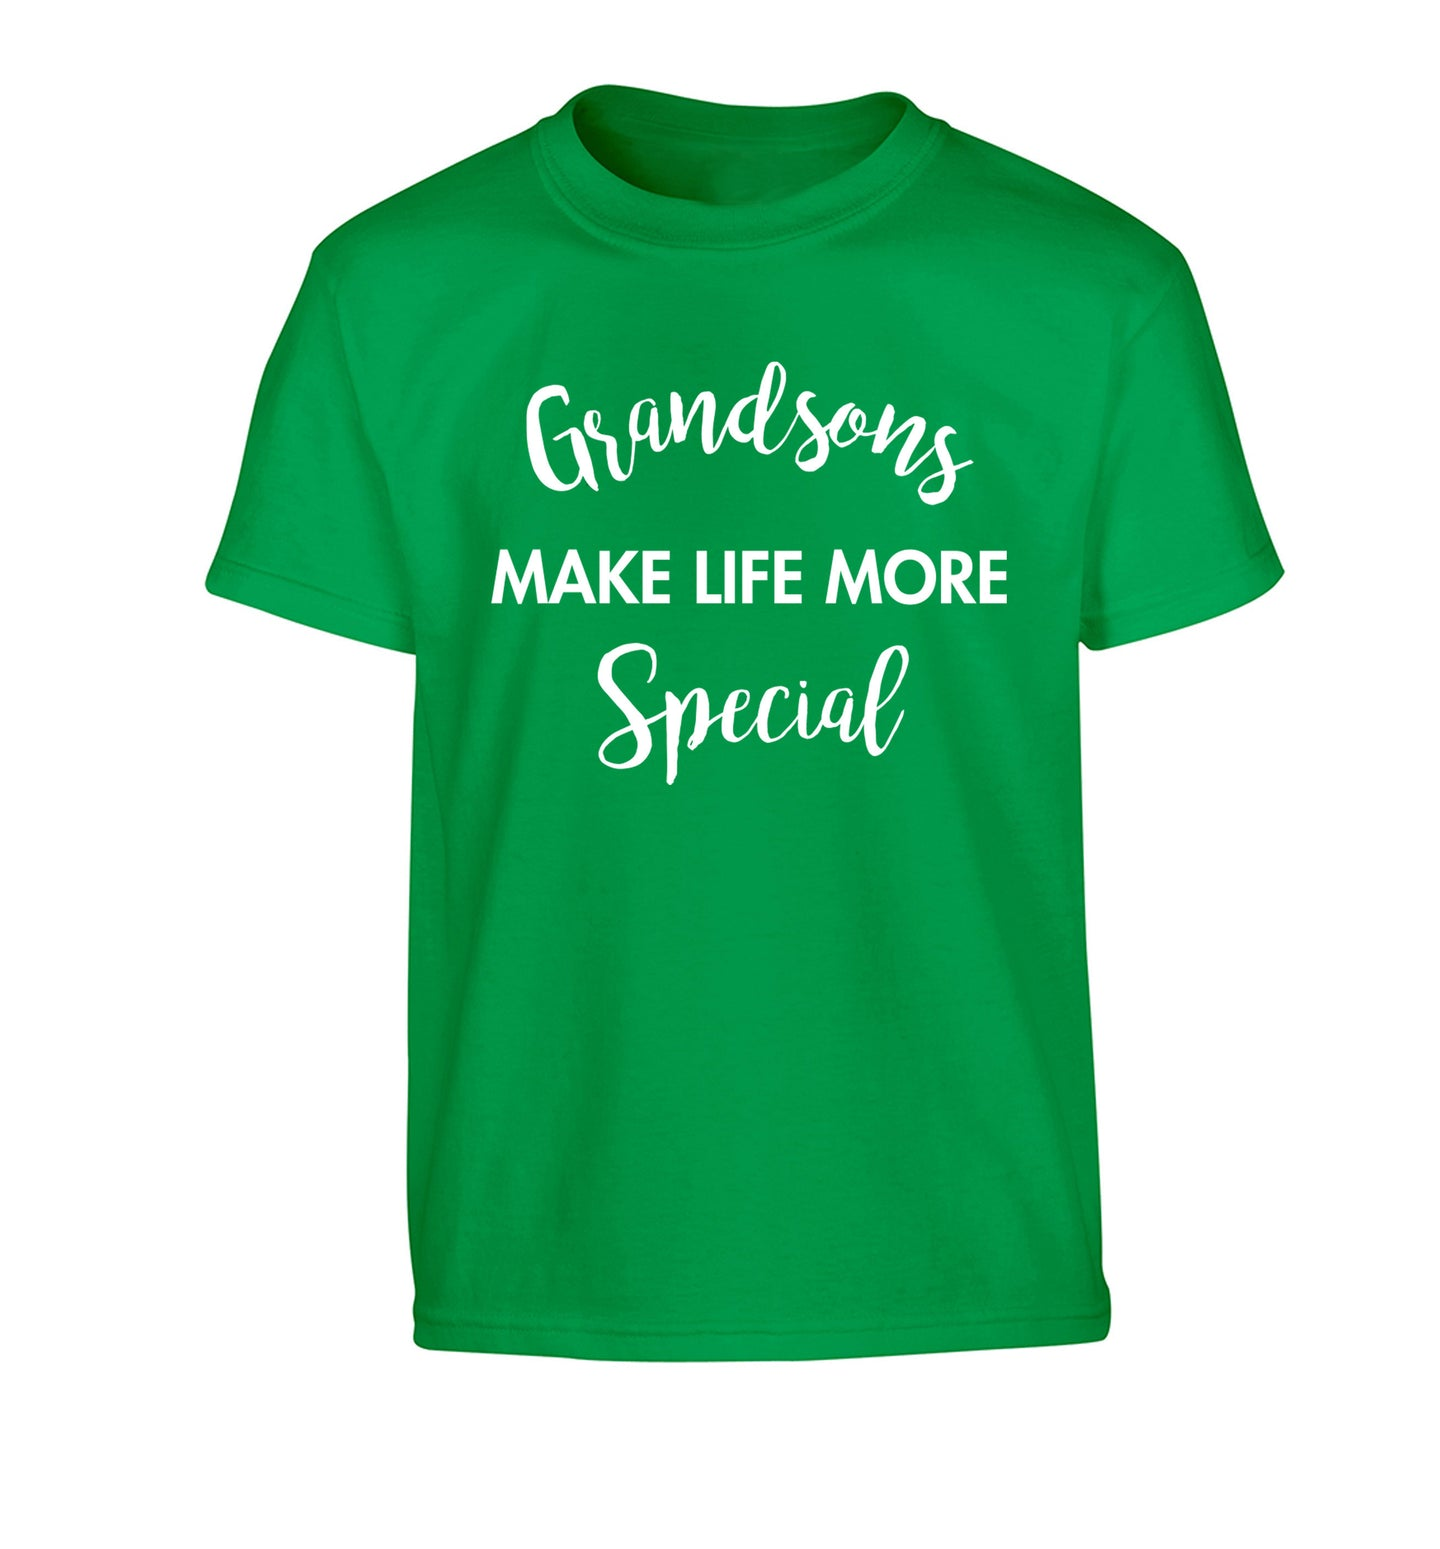 Grandsons make life more special Children's green Tshirt 12-14 Years